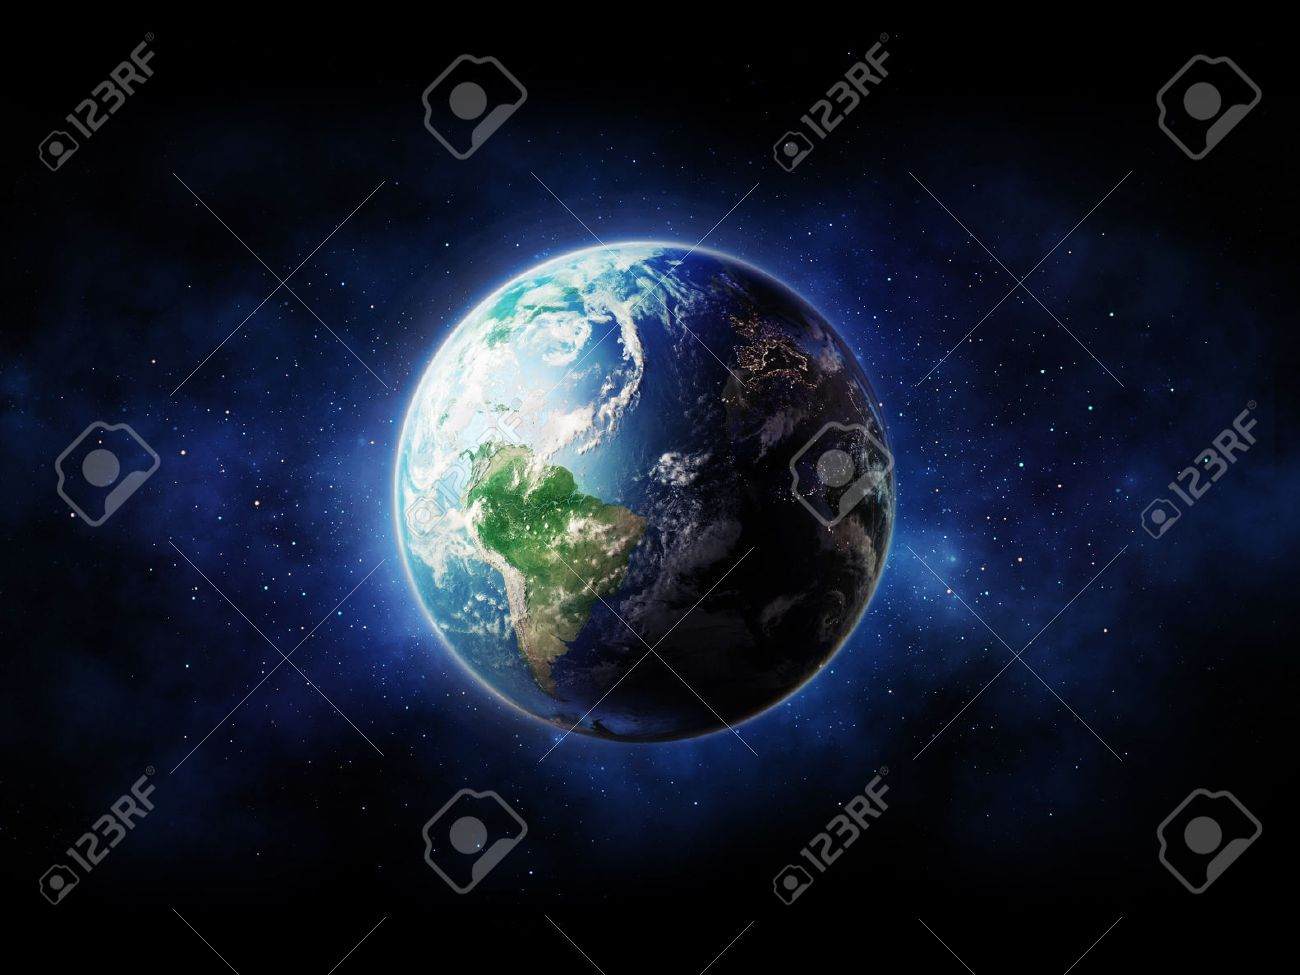 High Resolution Planet Earth view. The World Globe from Space in a star field showing the terrain and clouds. - 53663921